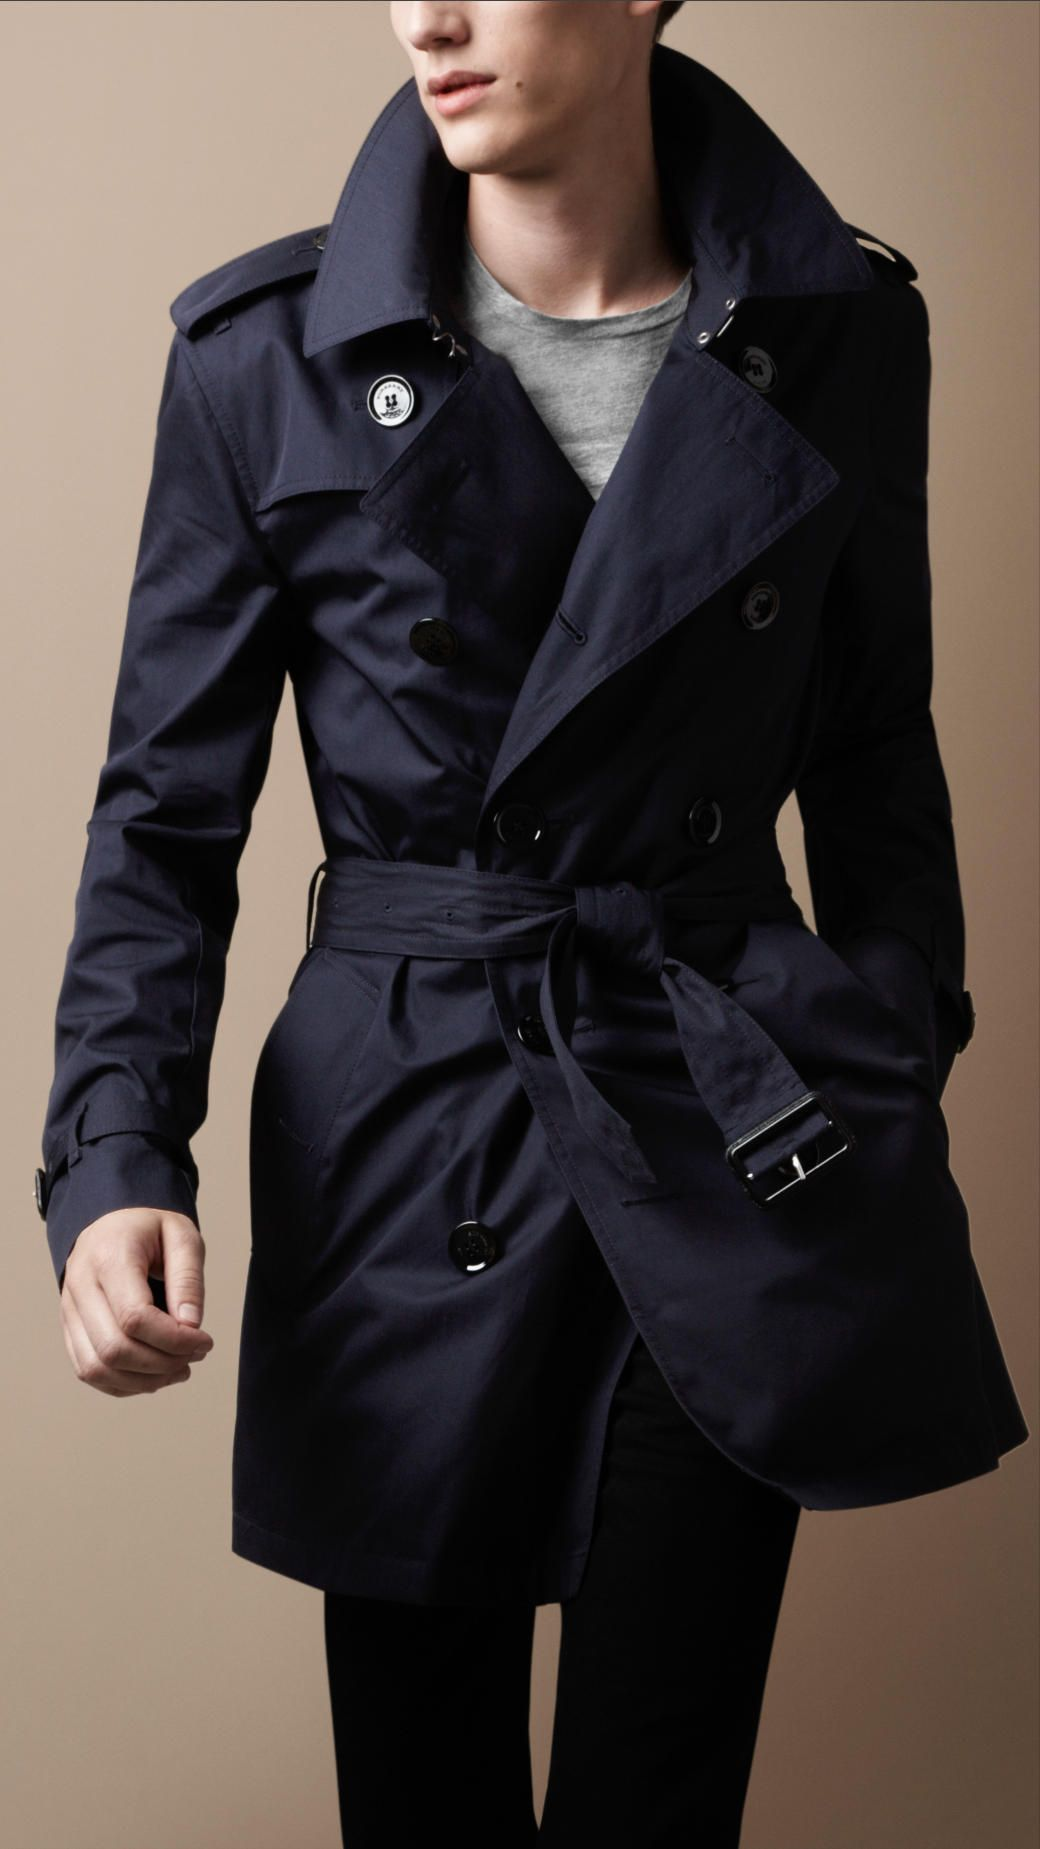 burberry brit homme in 2019 burberry trench coat burberry trench burberry outfit. Black Bedroom Furniture Sets. Home Design Ideas